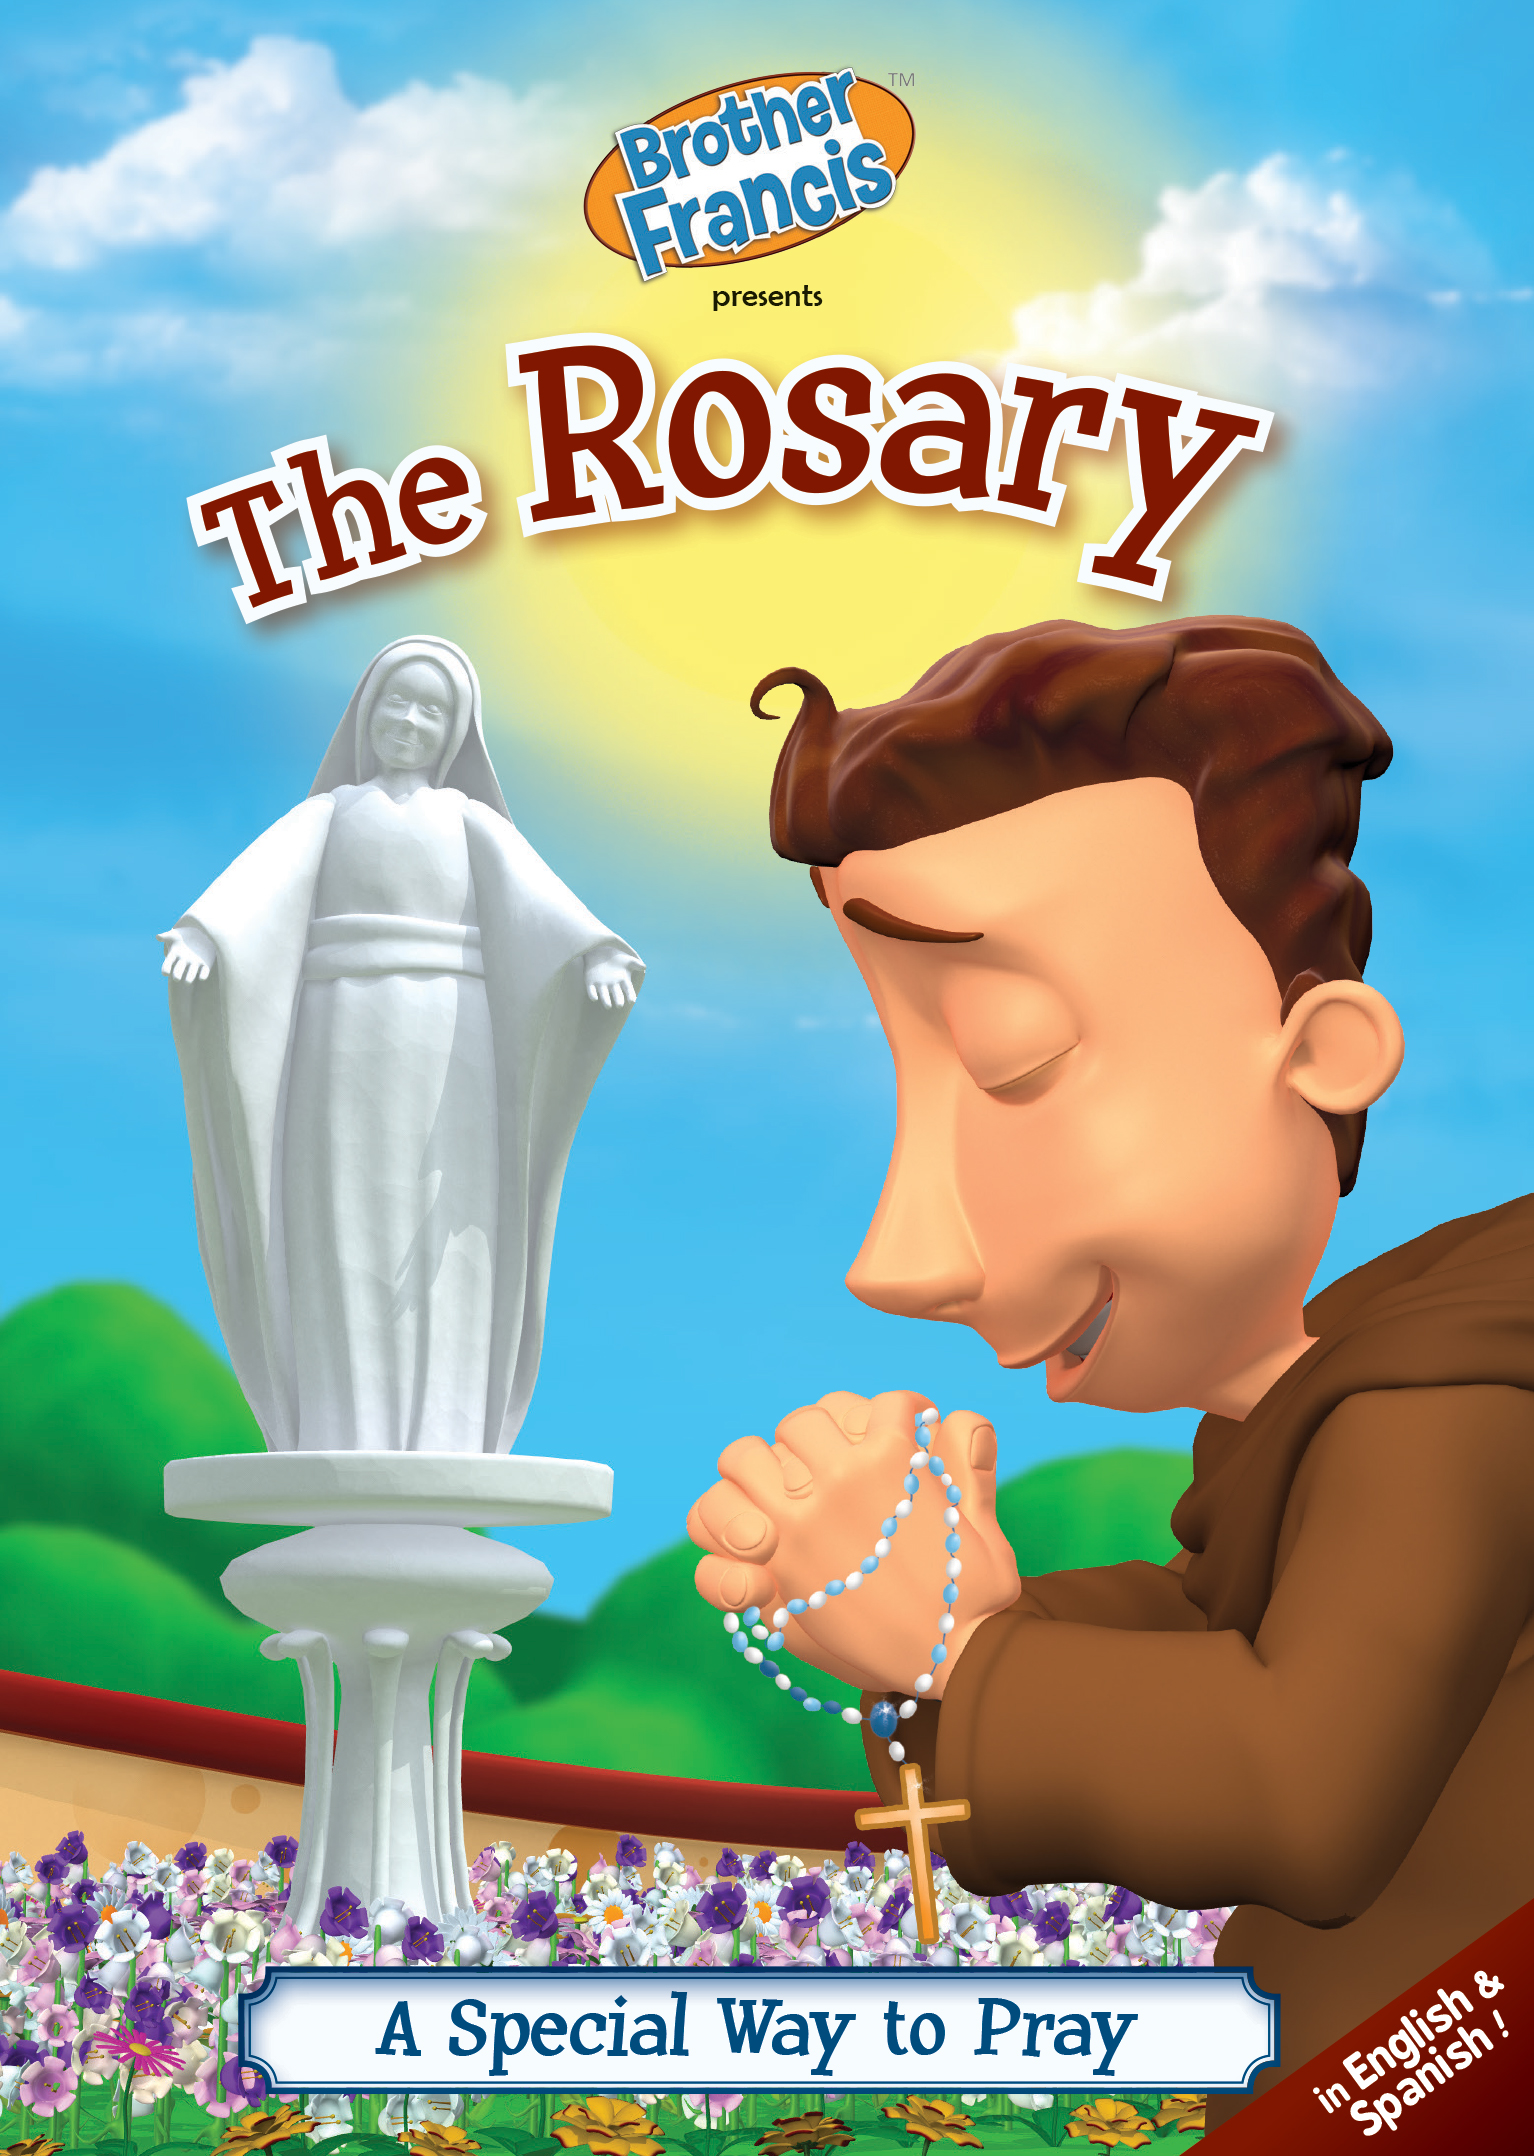 Brother Francis Episode 3: The Rosary